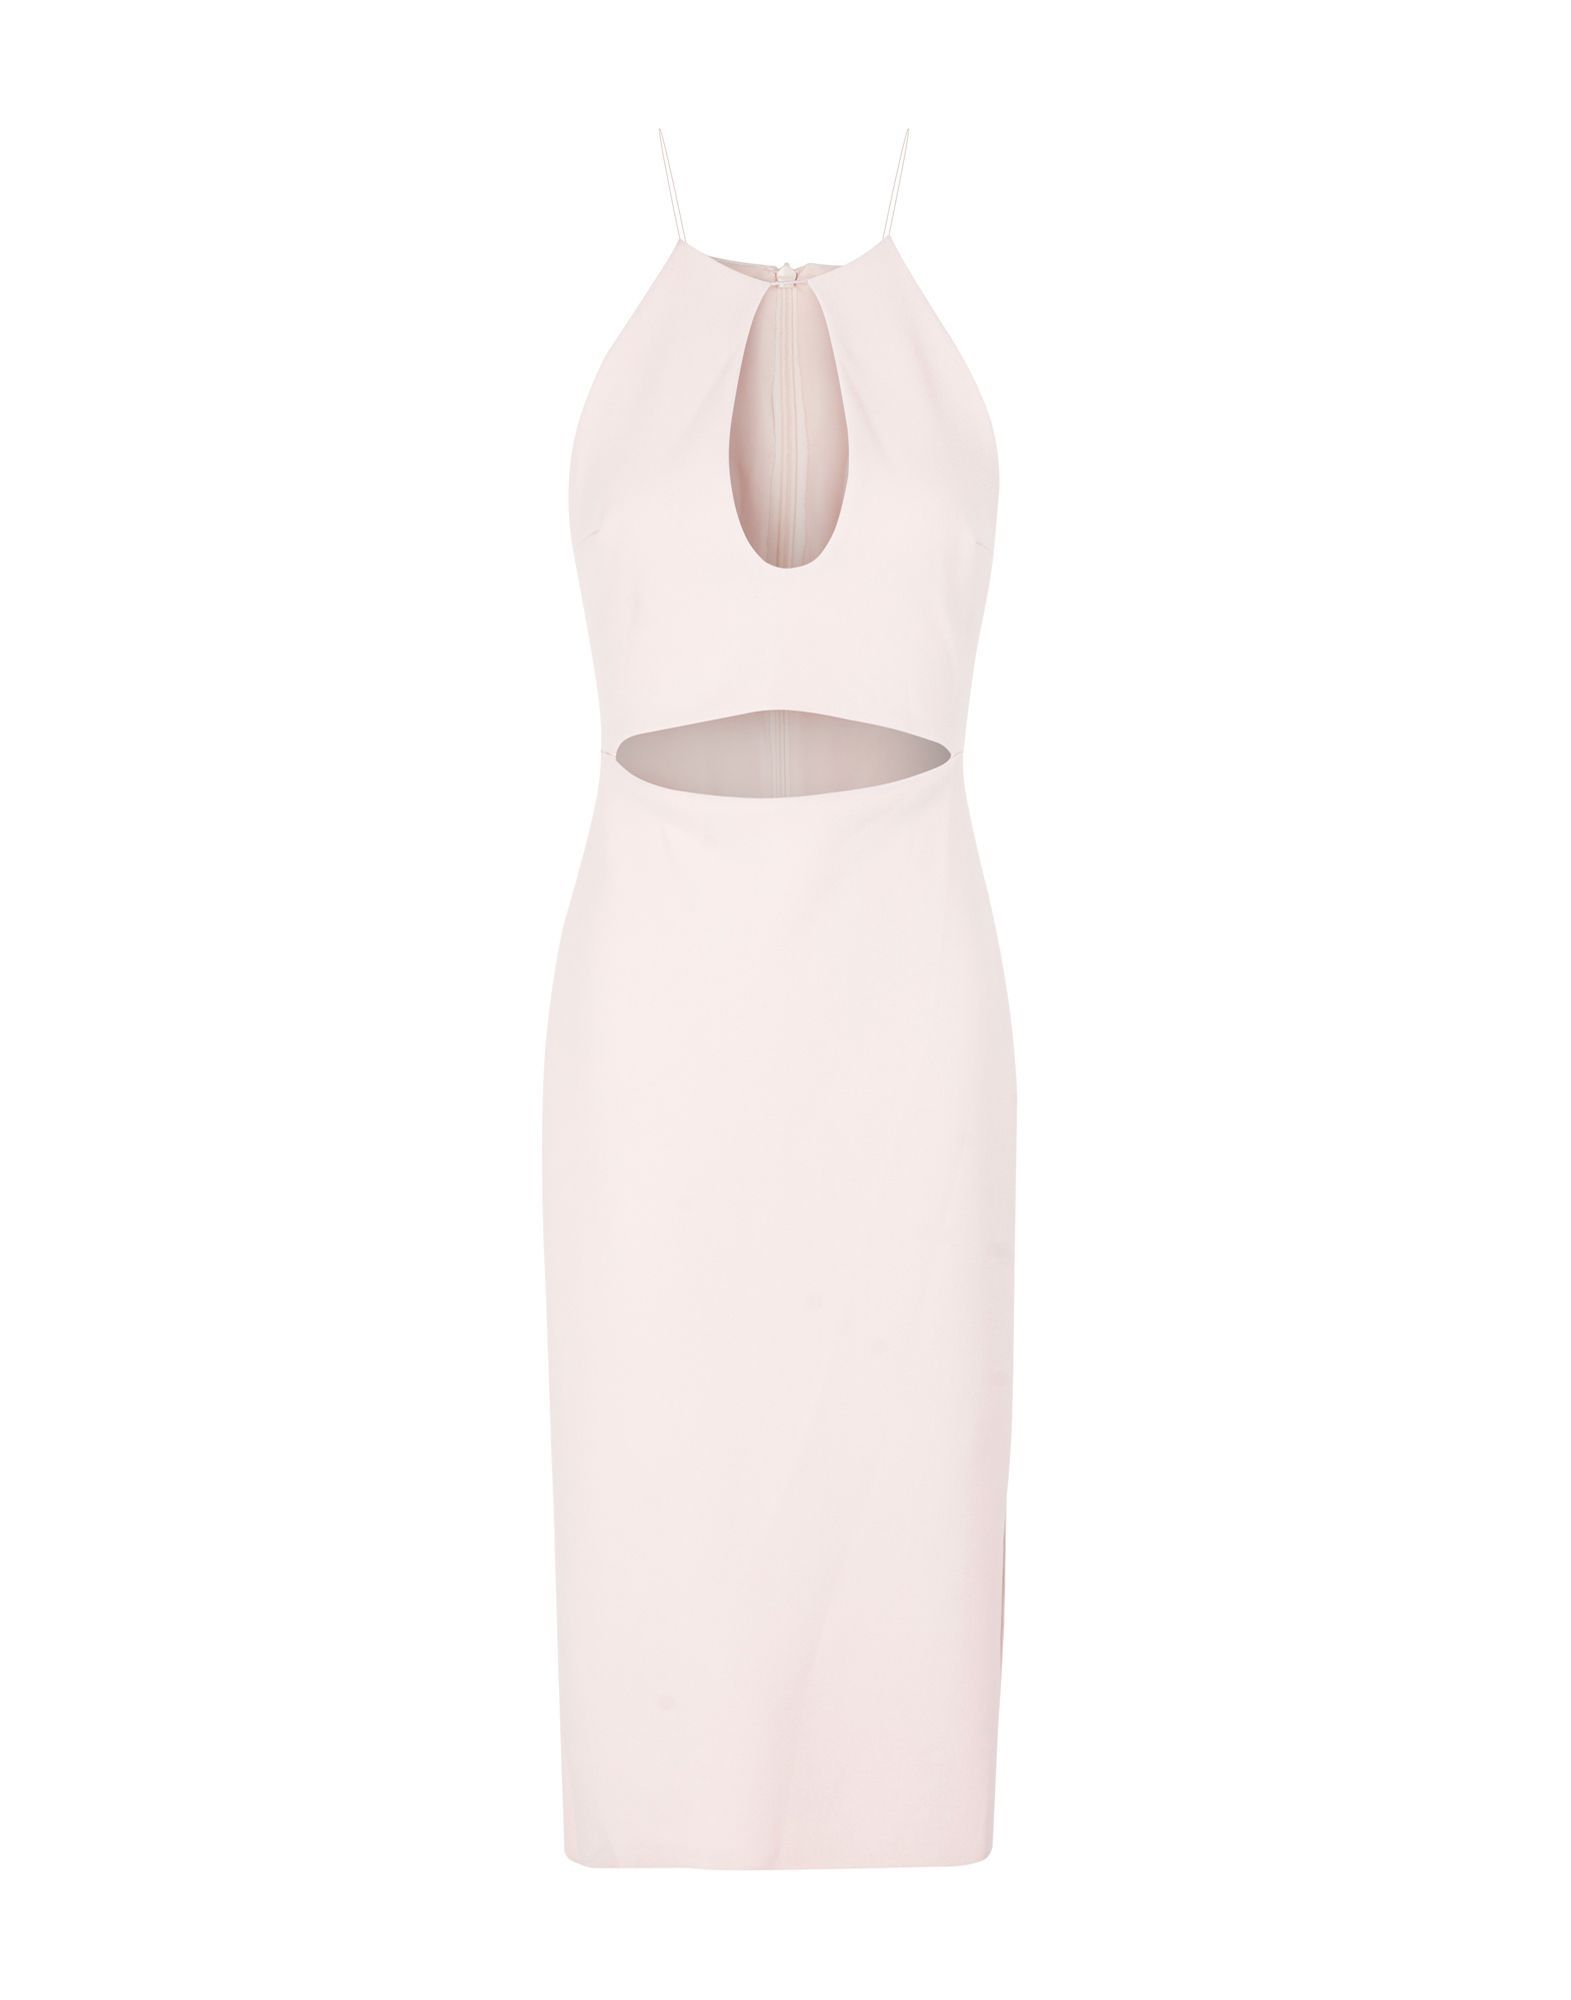 Bec & Bridge Light Pink Crepe Dress